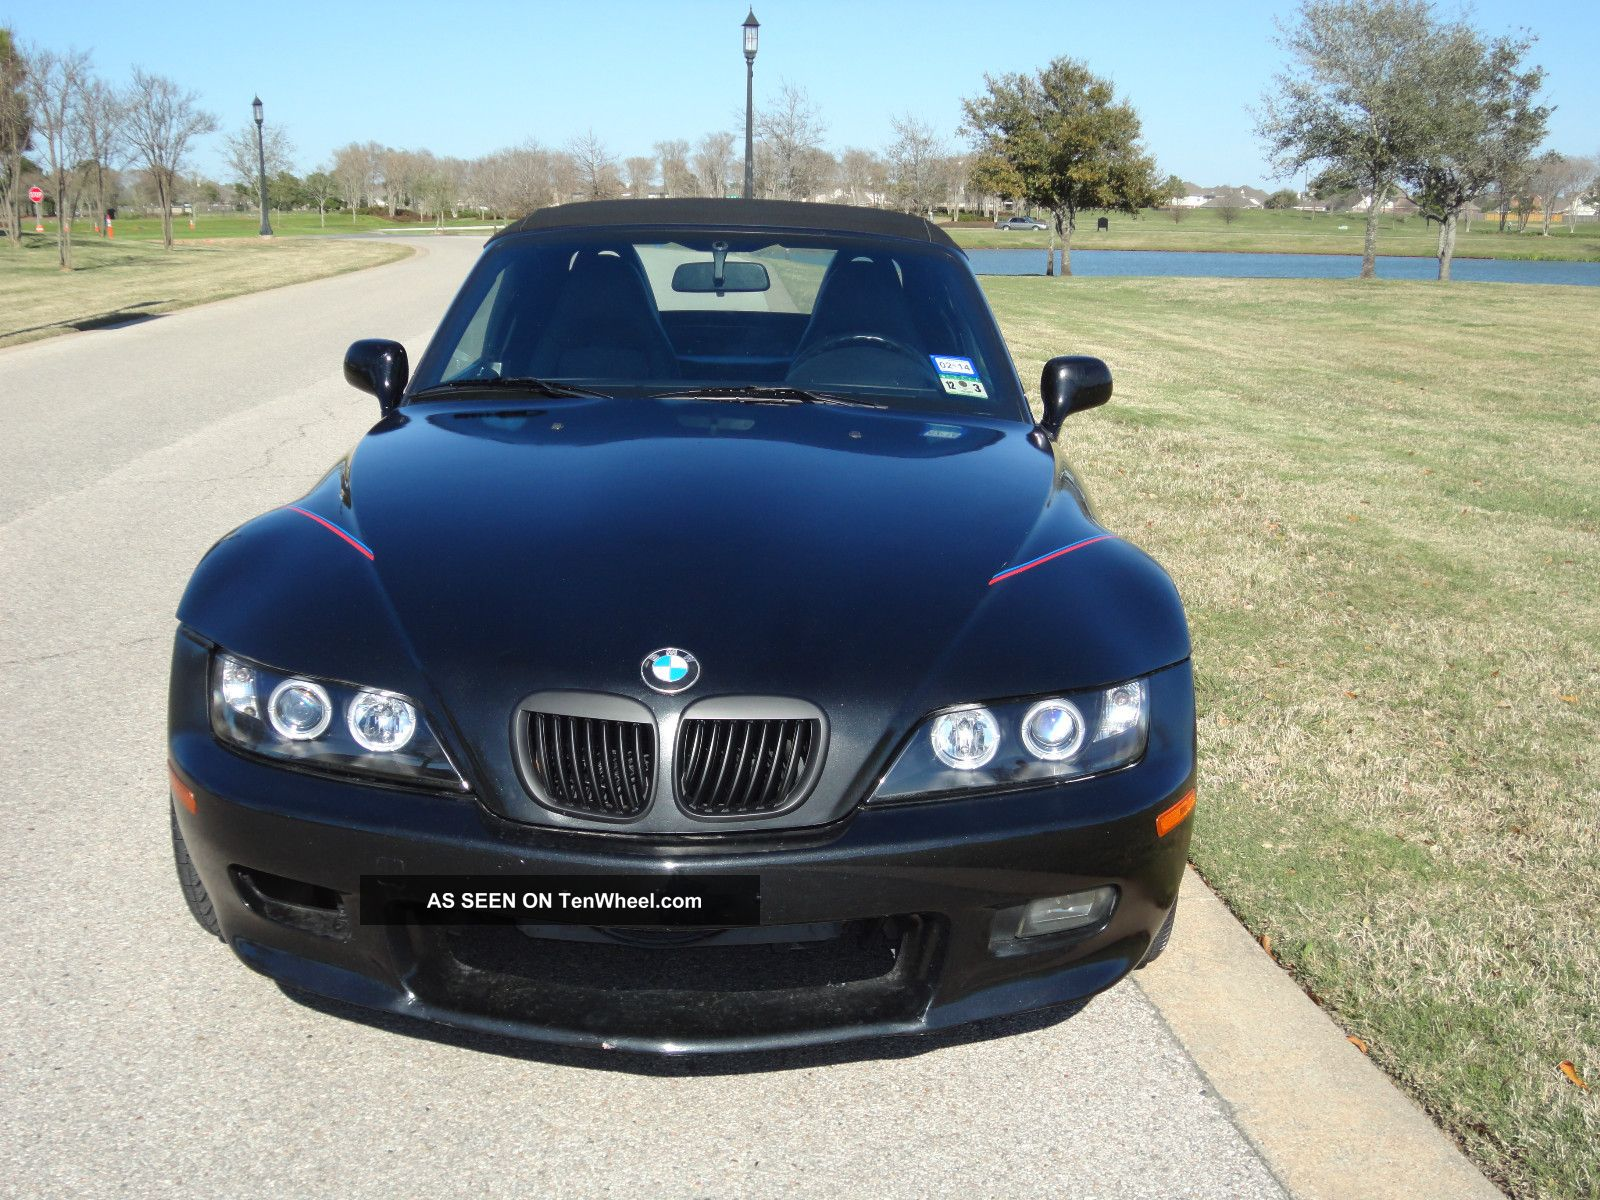 1999 Bmw Z3 Black Manual 5 Speed 6cyl 2 8l Roadster